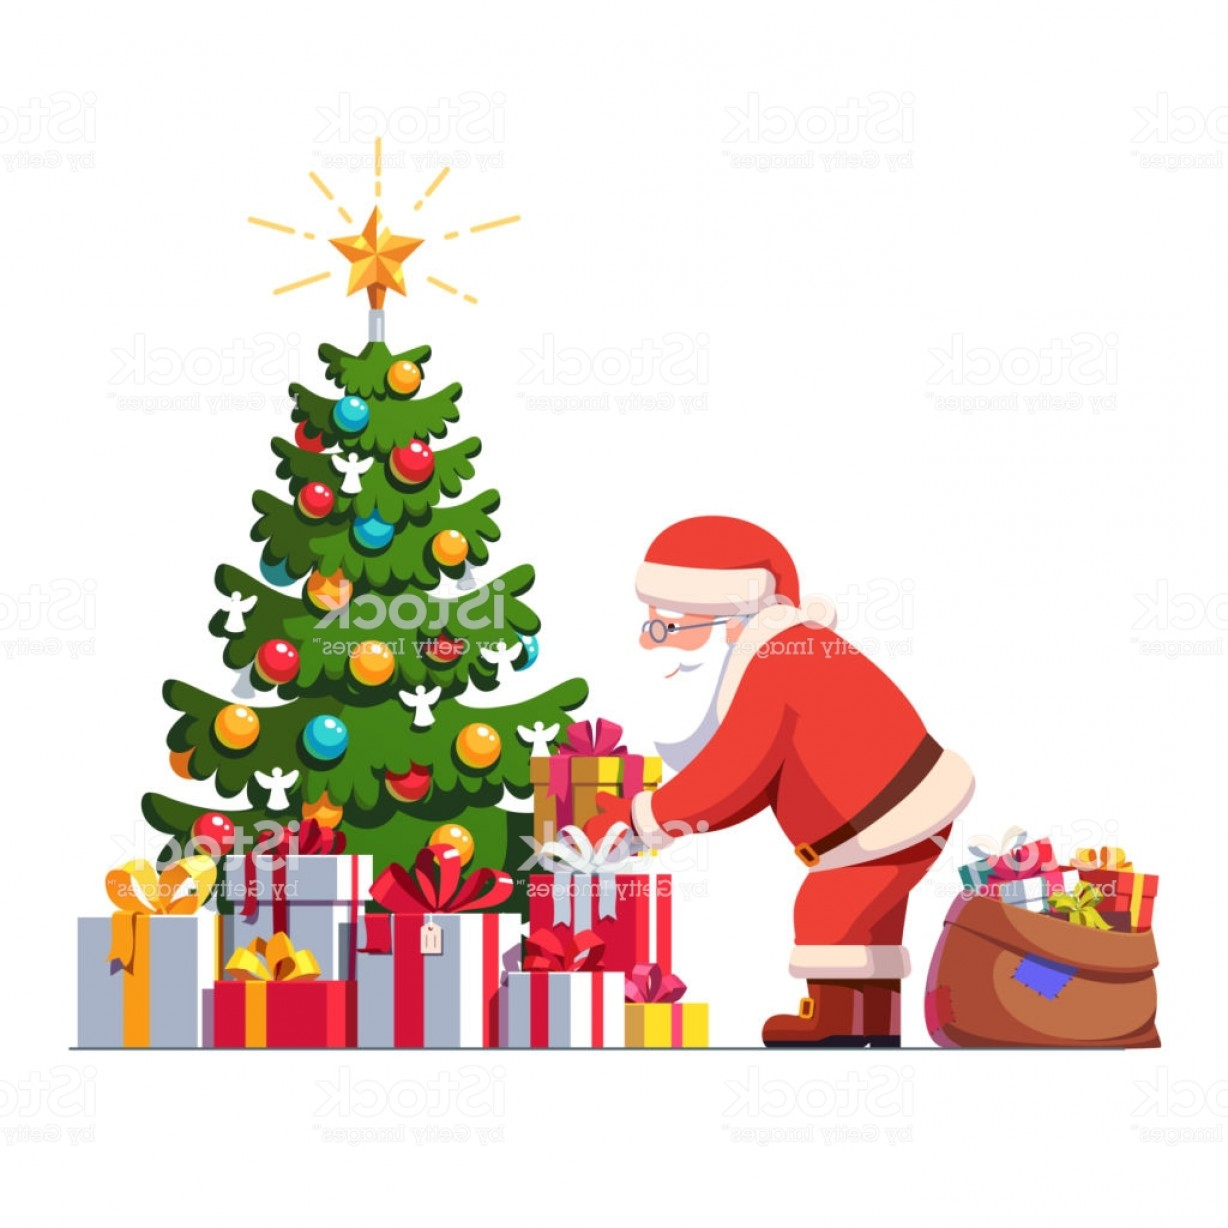 Christmas Tree Art Large Vector Format: Santa Claus Putting Gift Box Under Christmas Tree Decorated With Baubles And Gm